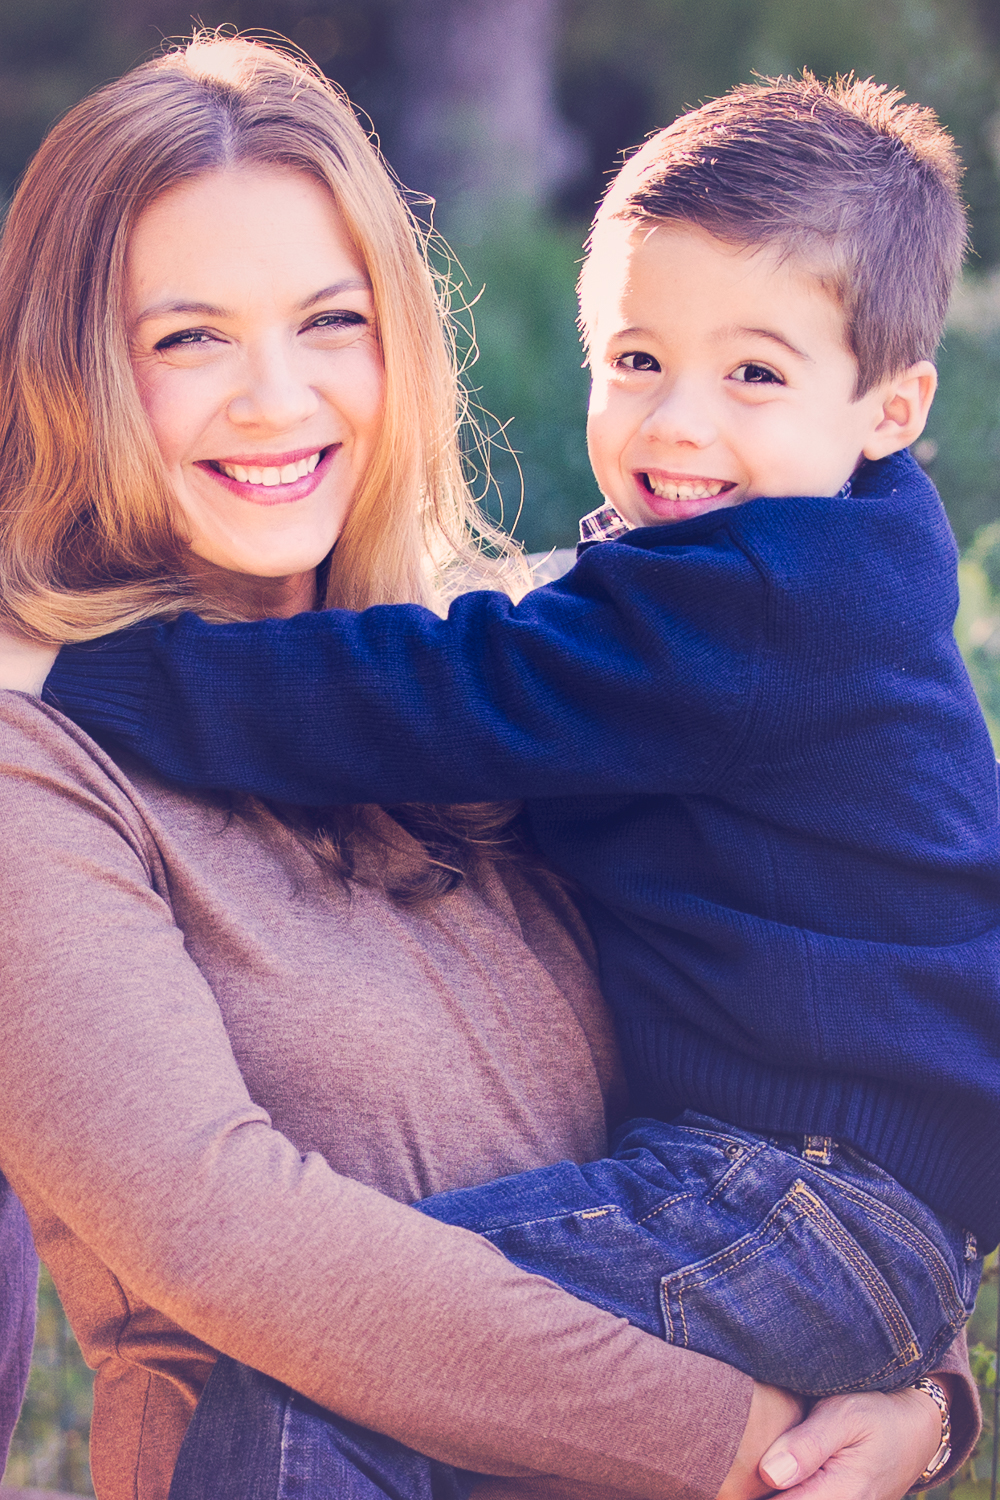 Photo of a smiling mom holding her happy little boy, Fall photo